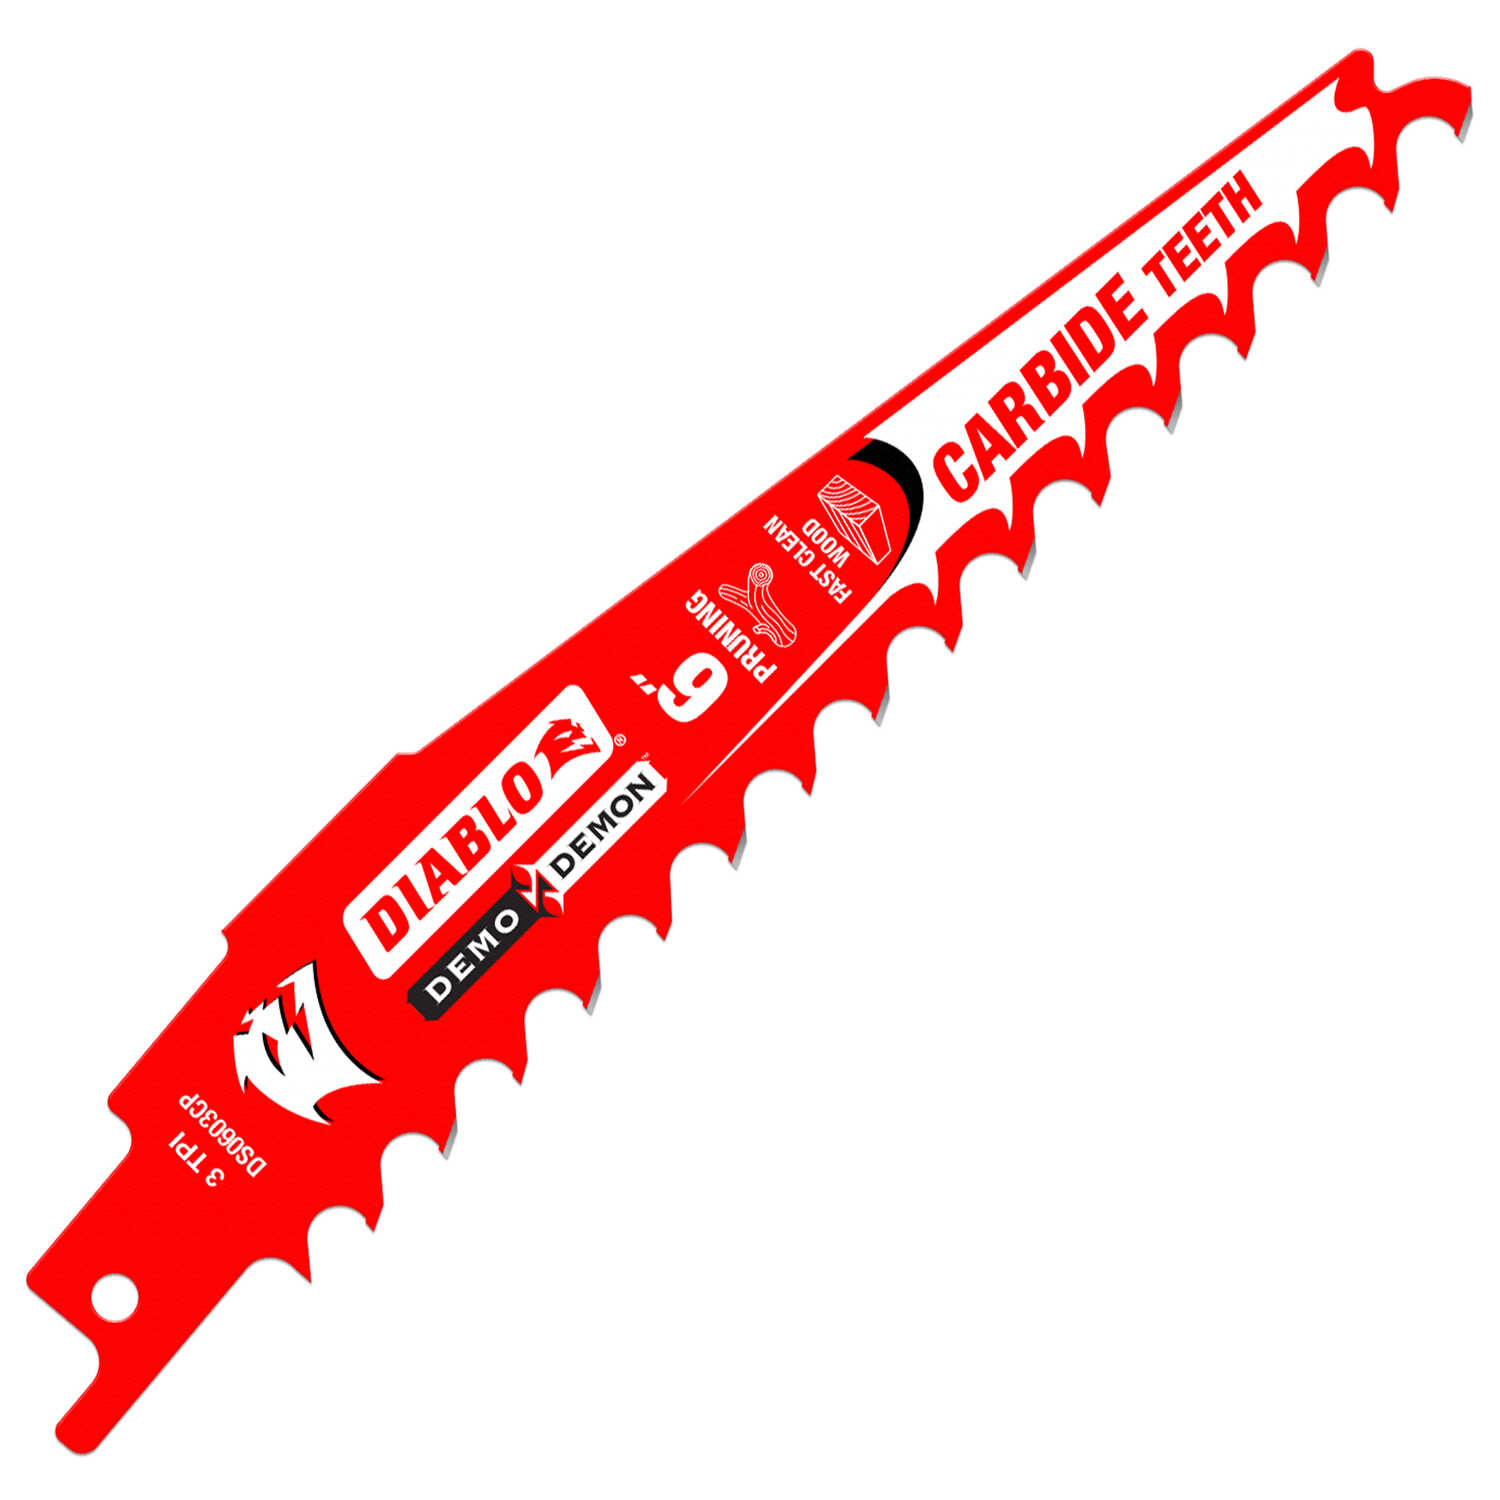 Diablo  Demo Demon  6 in. L x 1 in. W Carbide Tipped  Reciprocating Saw Blade  3 TPI 1 pk